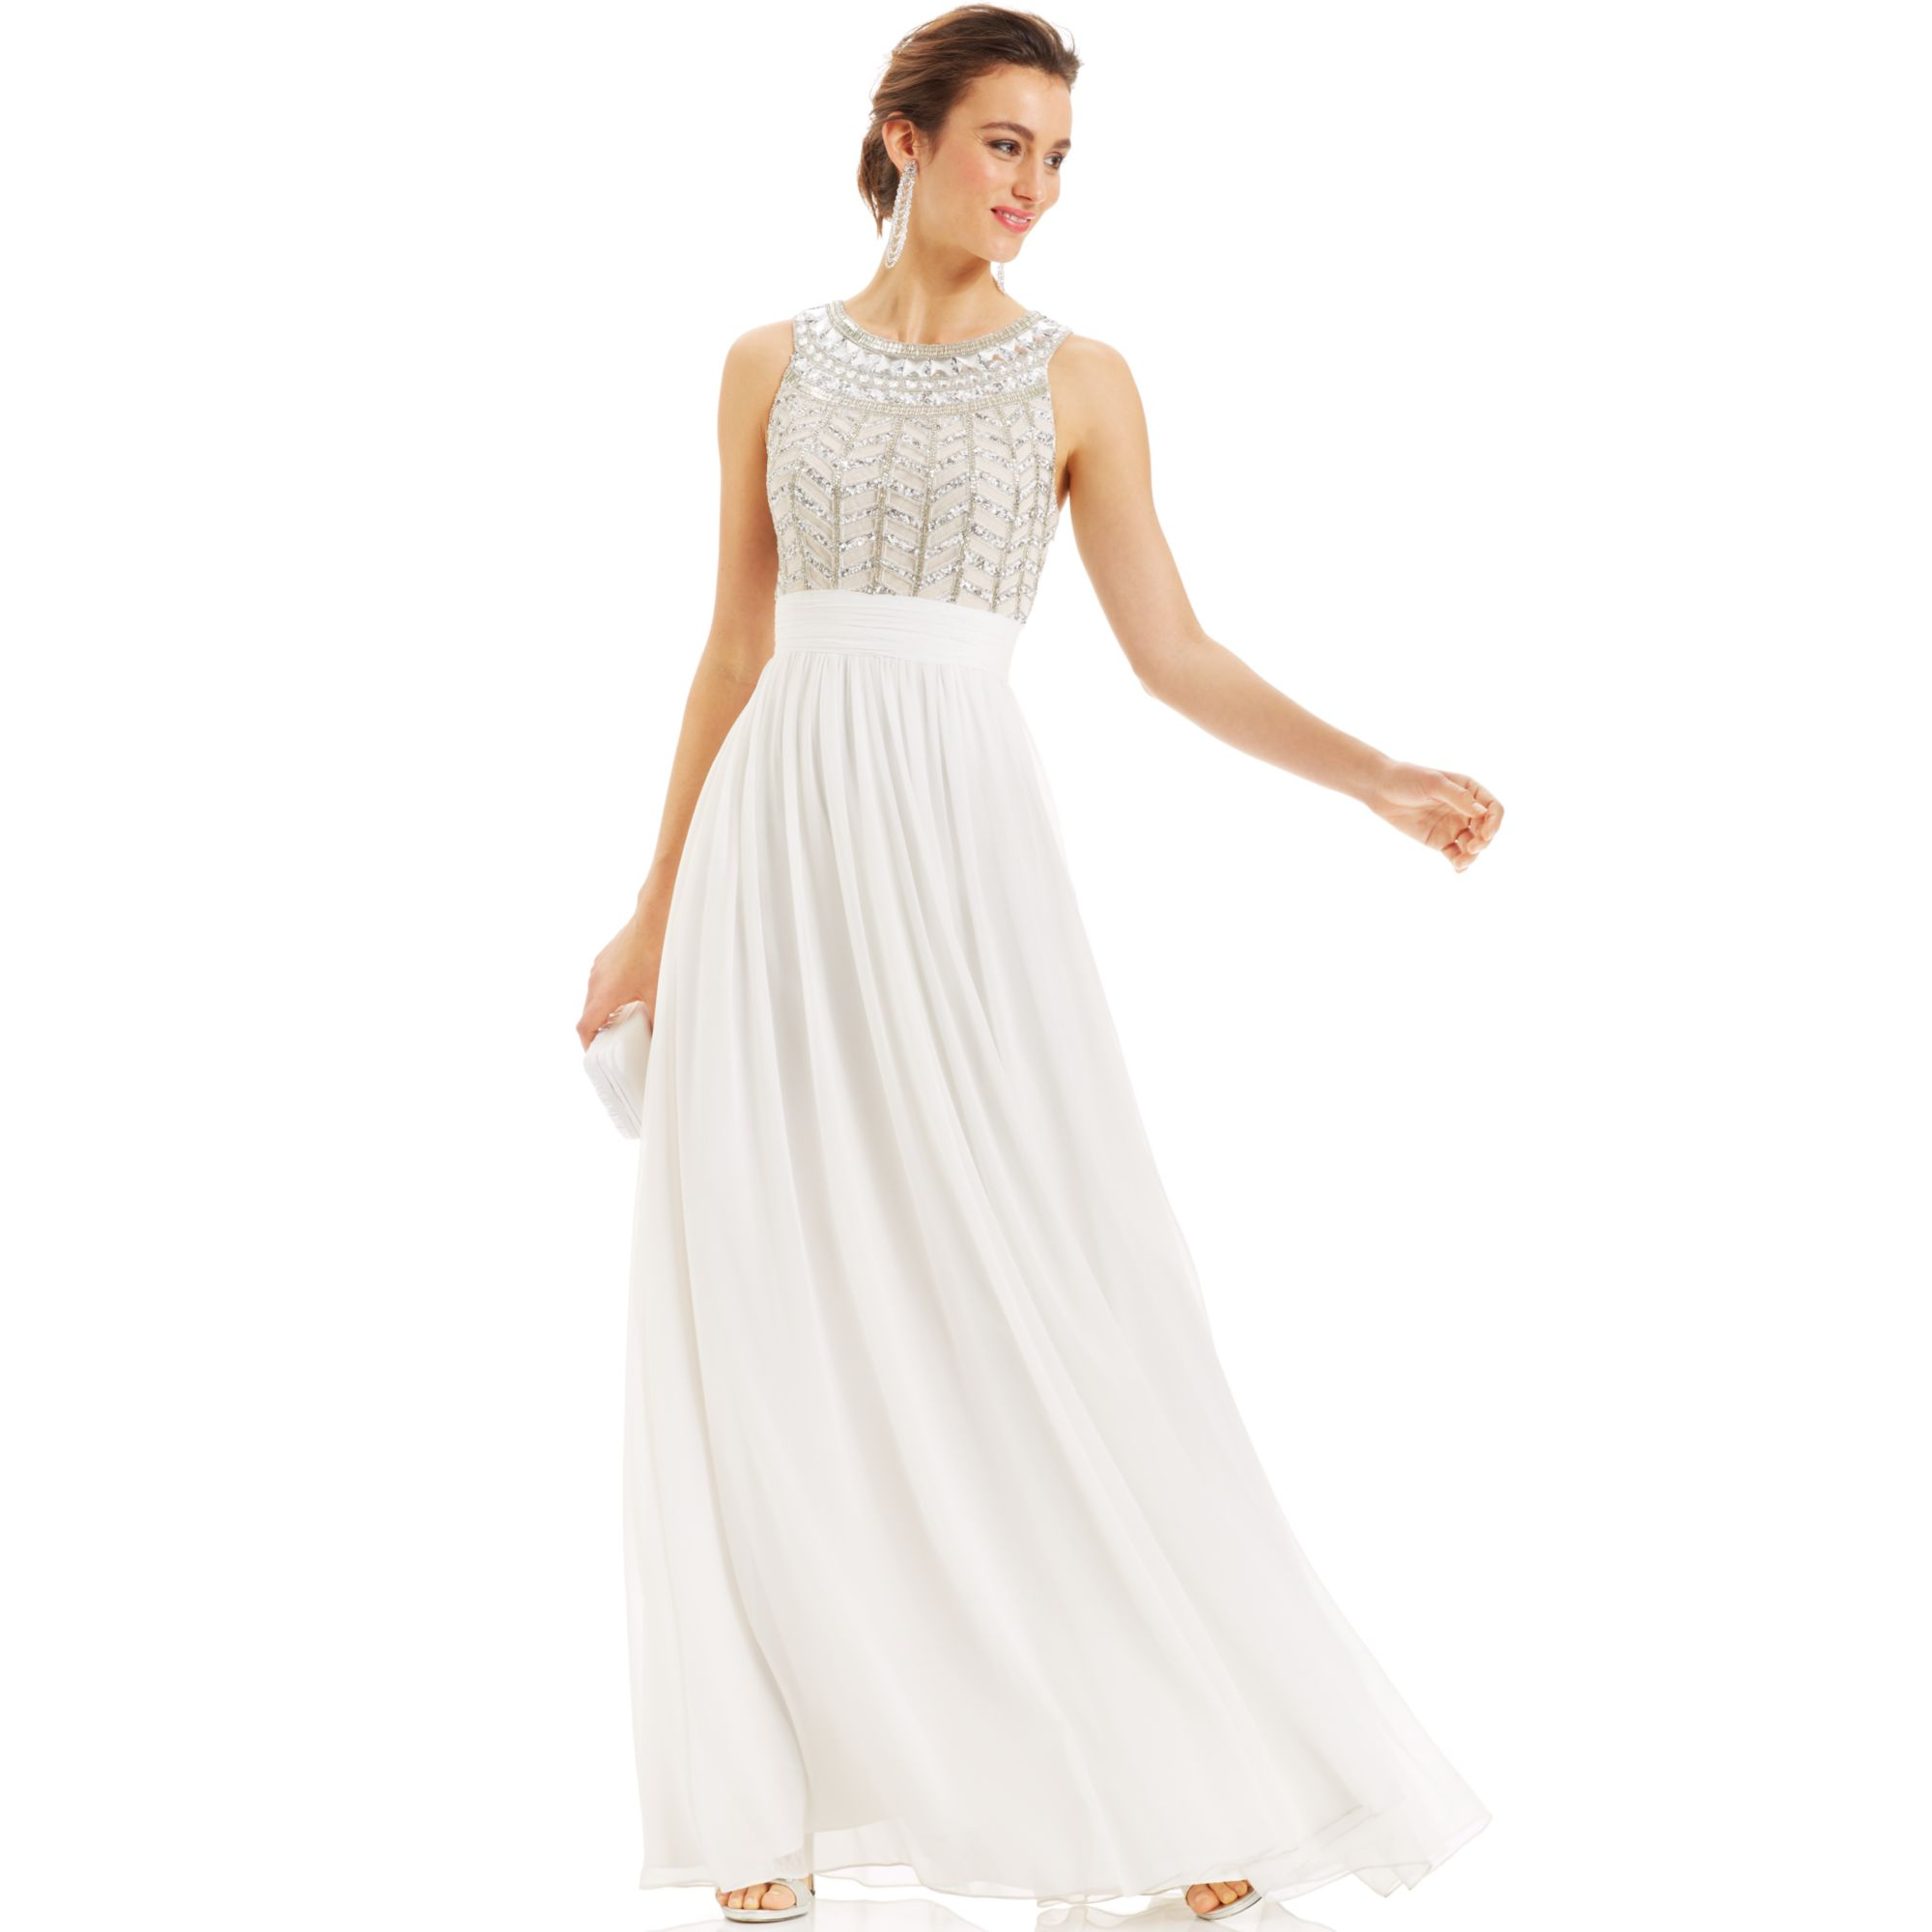 b2ad59880d Lyst - JS Collections Dress Sleeveless Beaded Empirewaist Gown in White